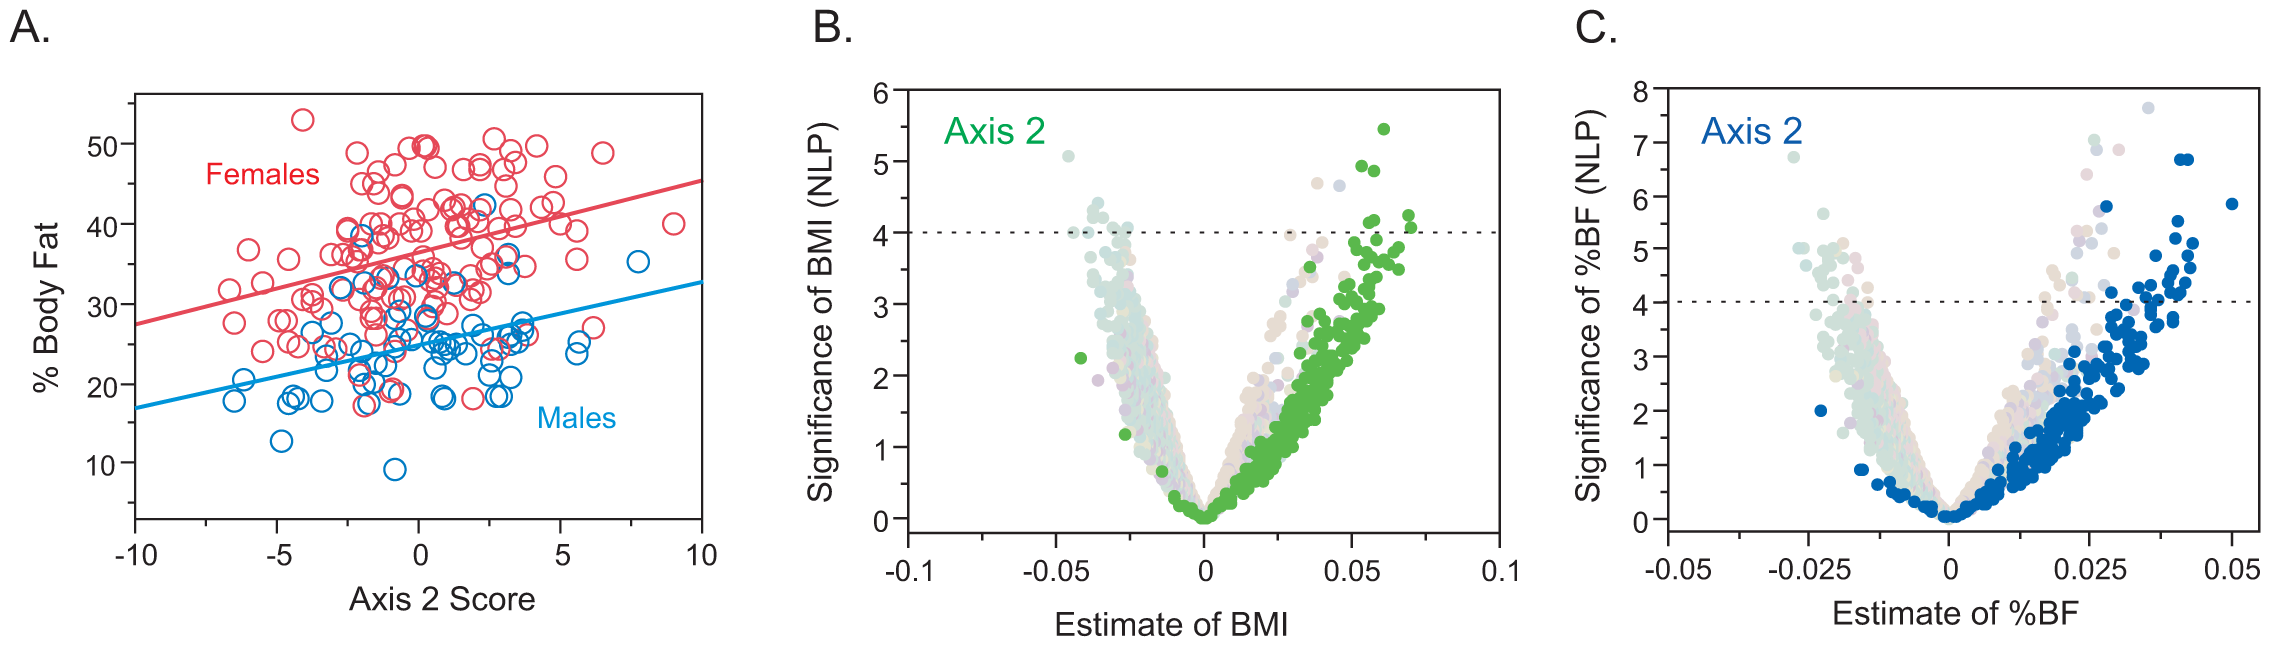 Relationship between BMI or Percent Body Fat (%BF) and Gene Expression in the CHDWB study.